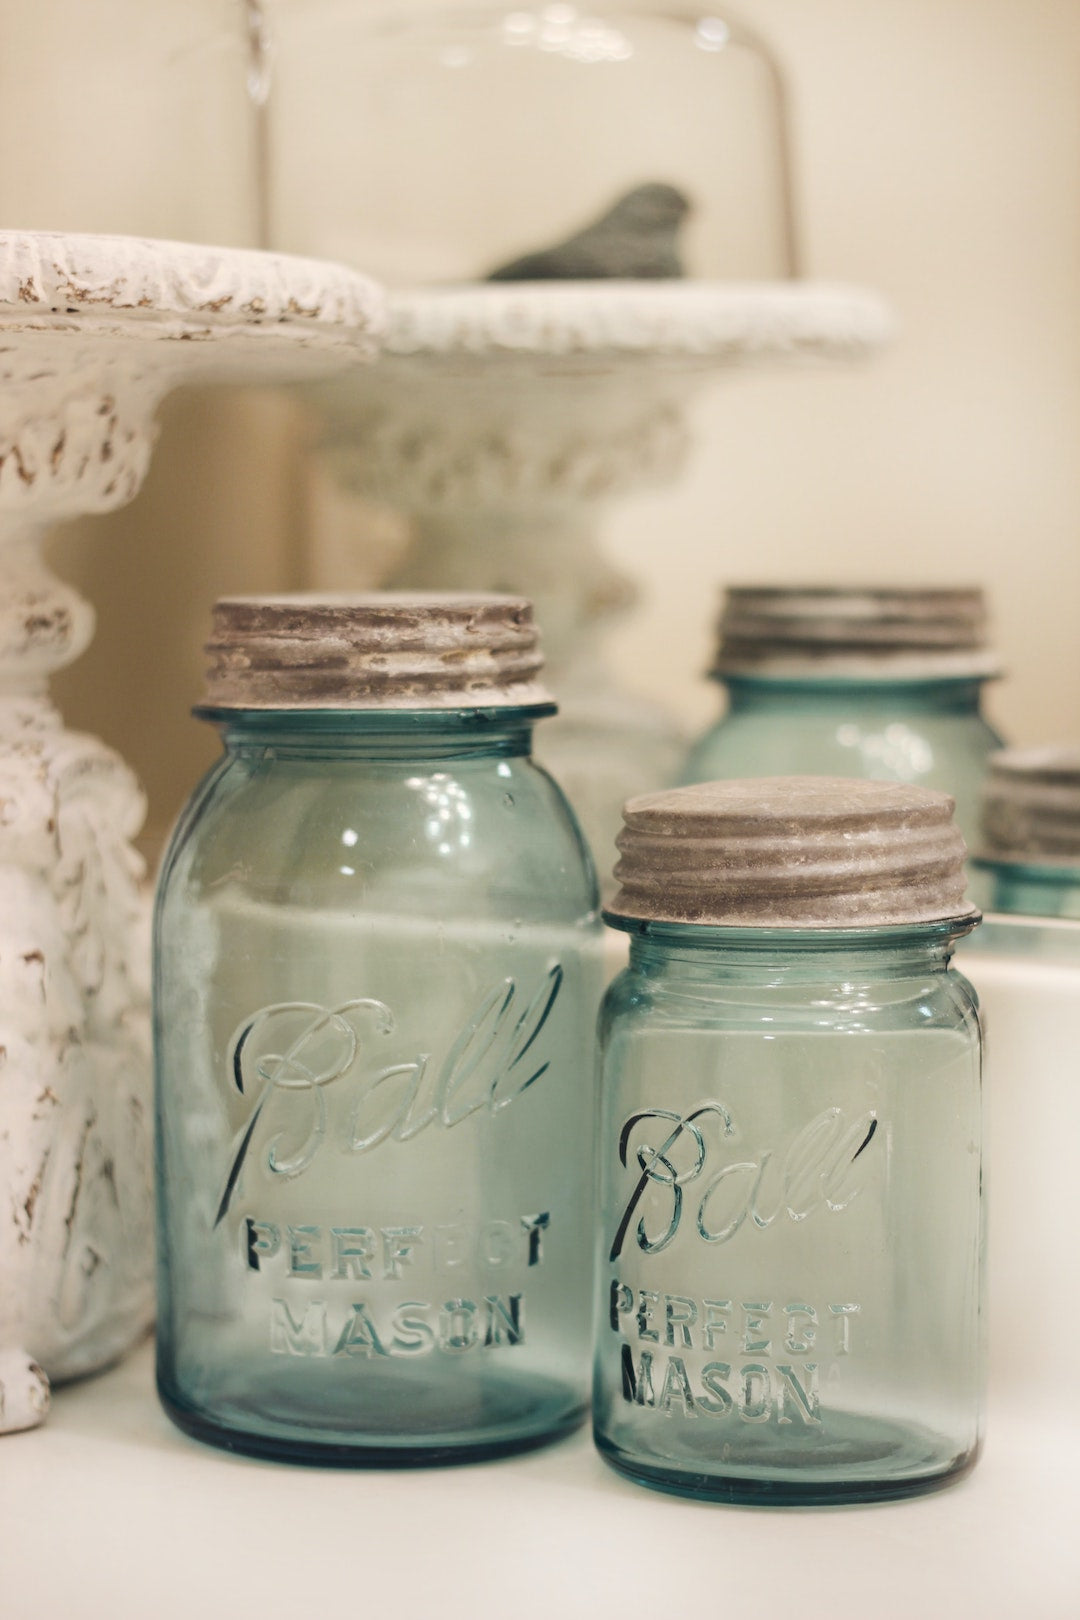 Image of mason jars for use in a DIY skincare routine with LEVO.